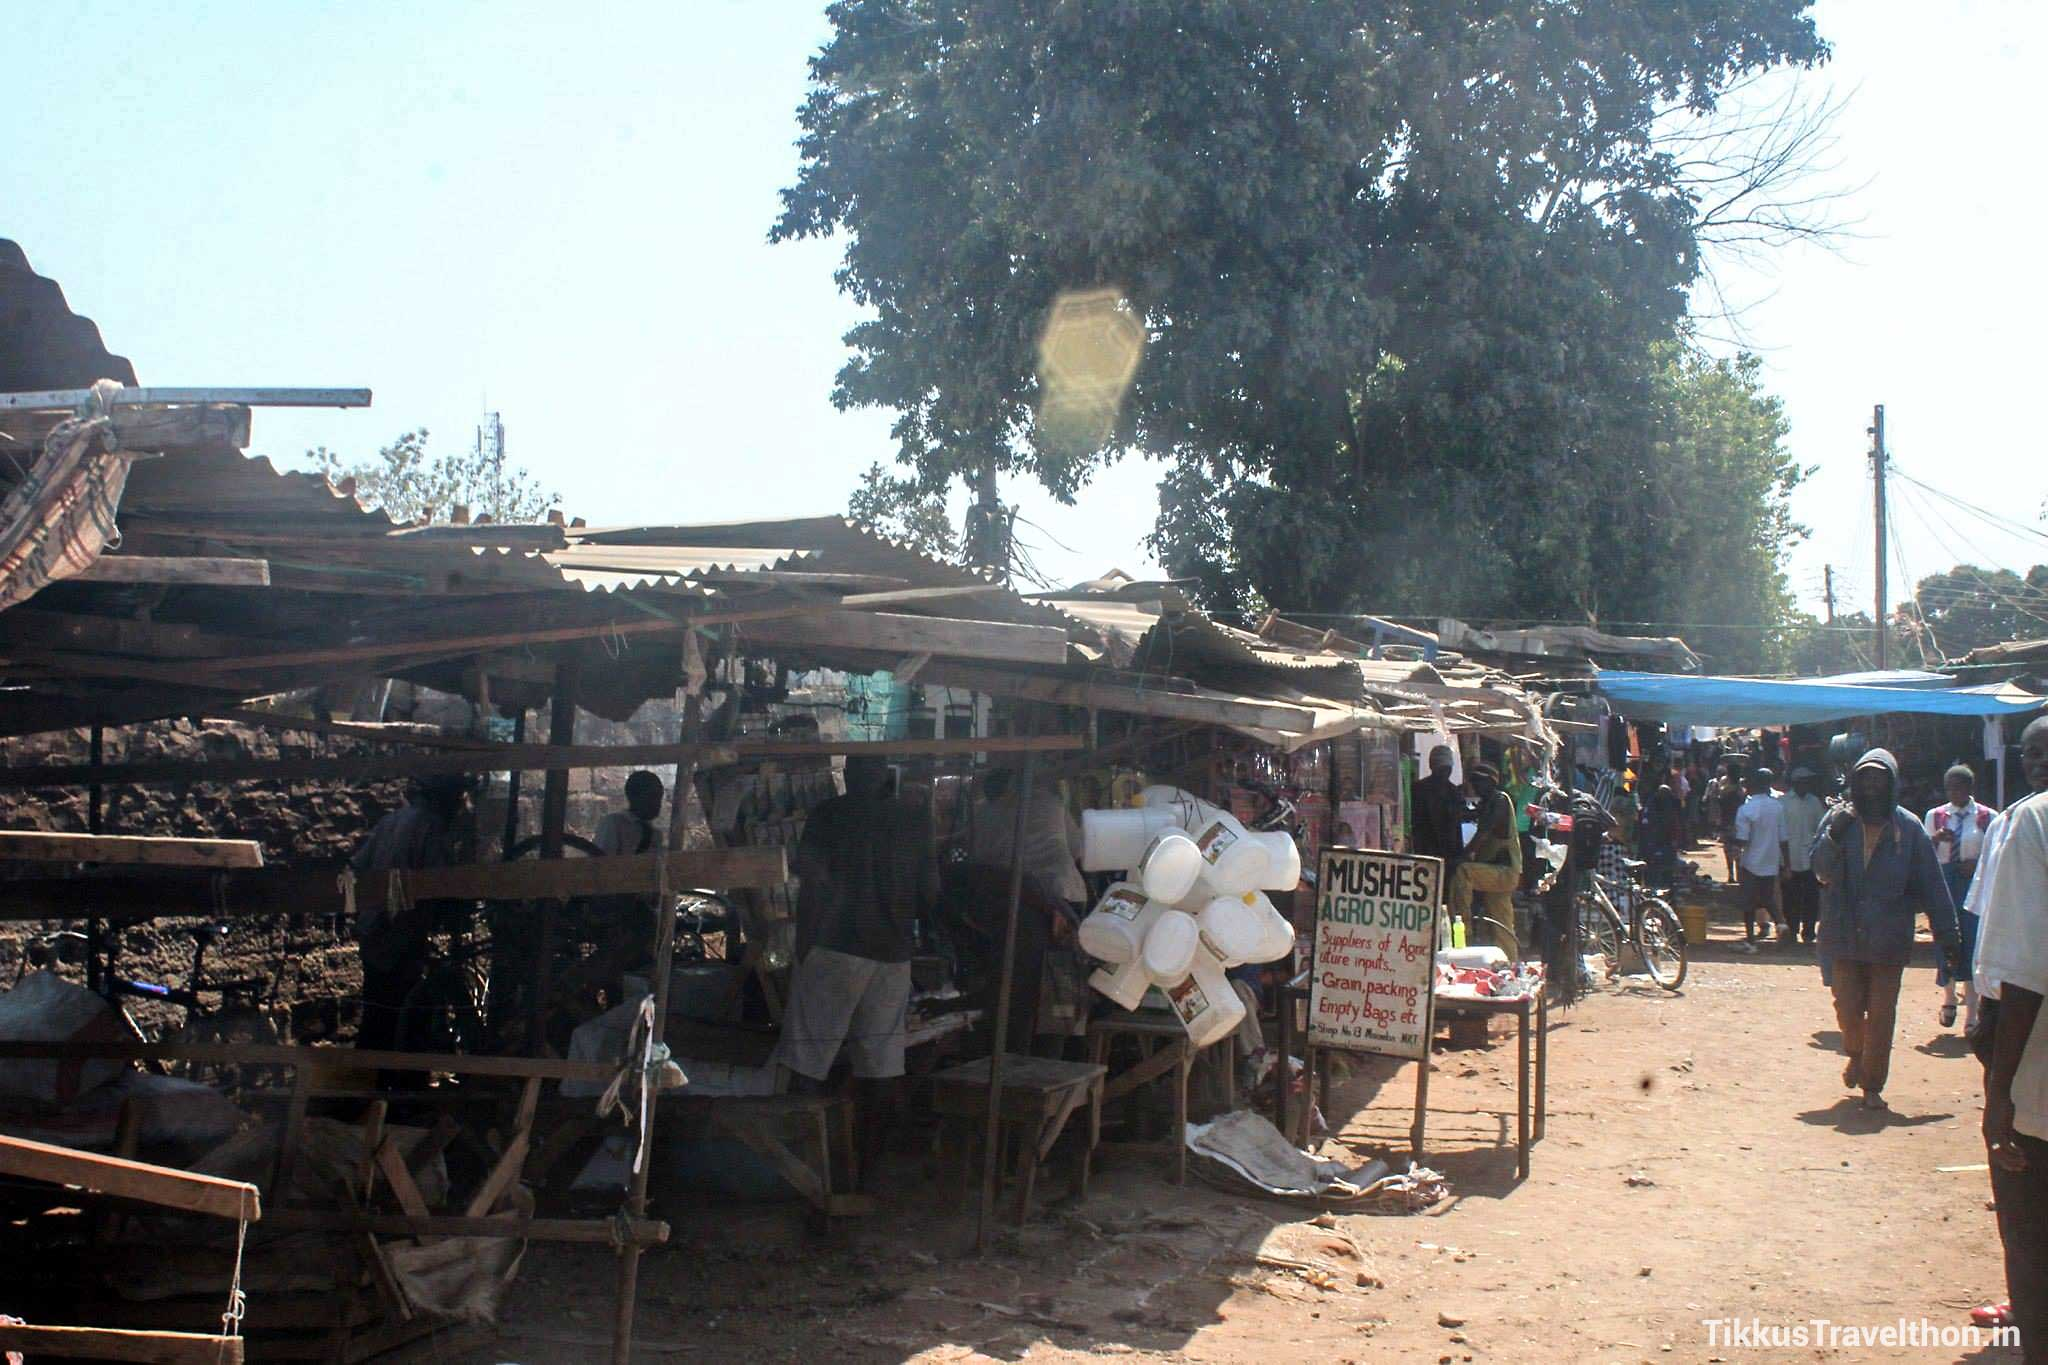 Getting a feel of The Local Markets and a taste of The Real Africa – Zambia, September 2016